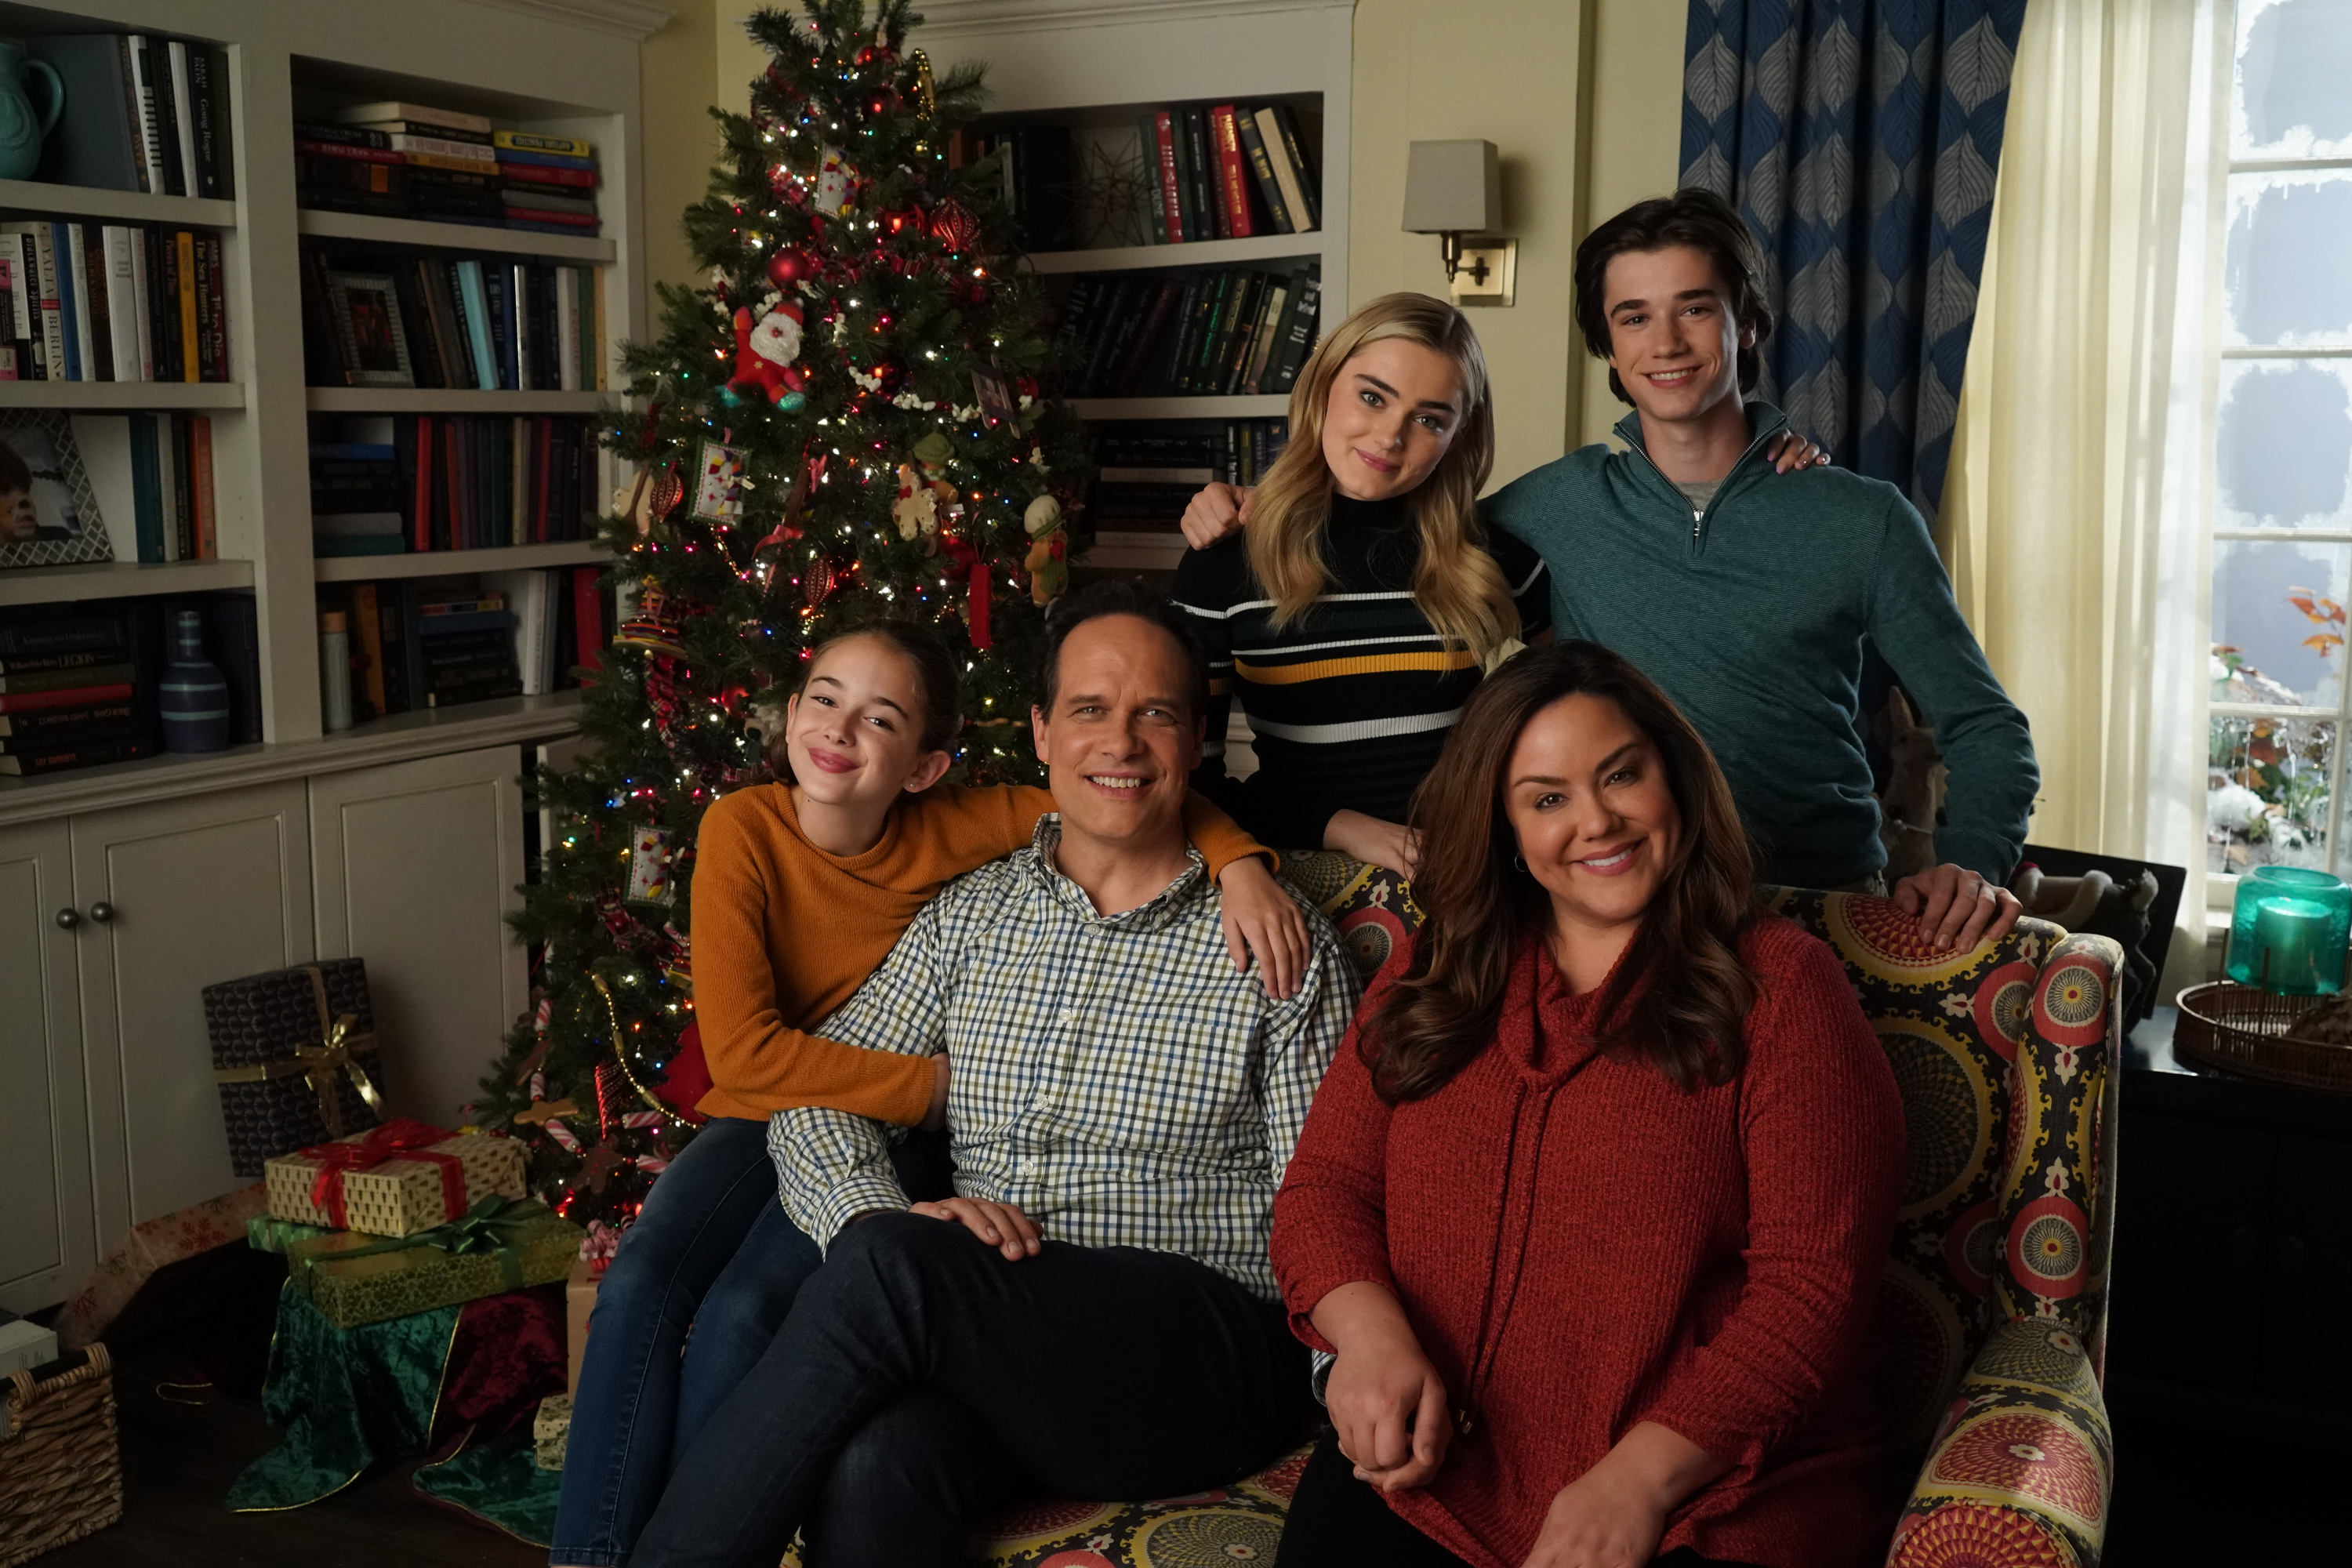 American Housewife Christmas Episode 2020 The Bromance Before Christmas